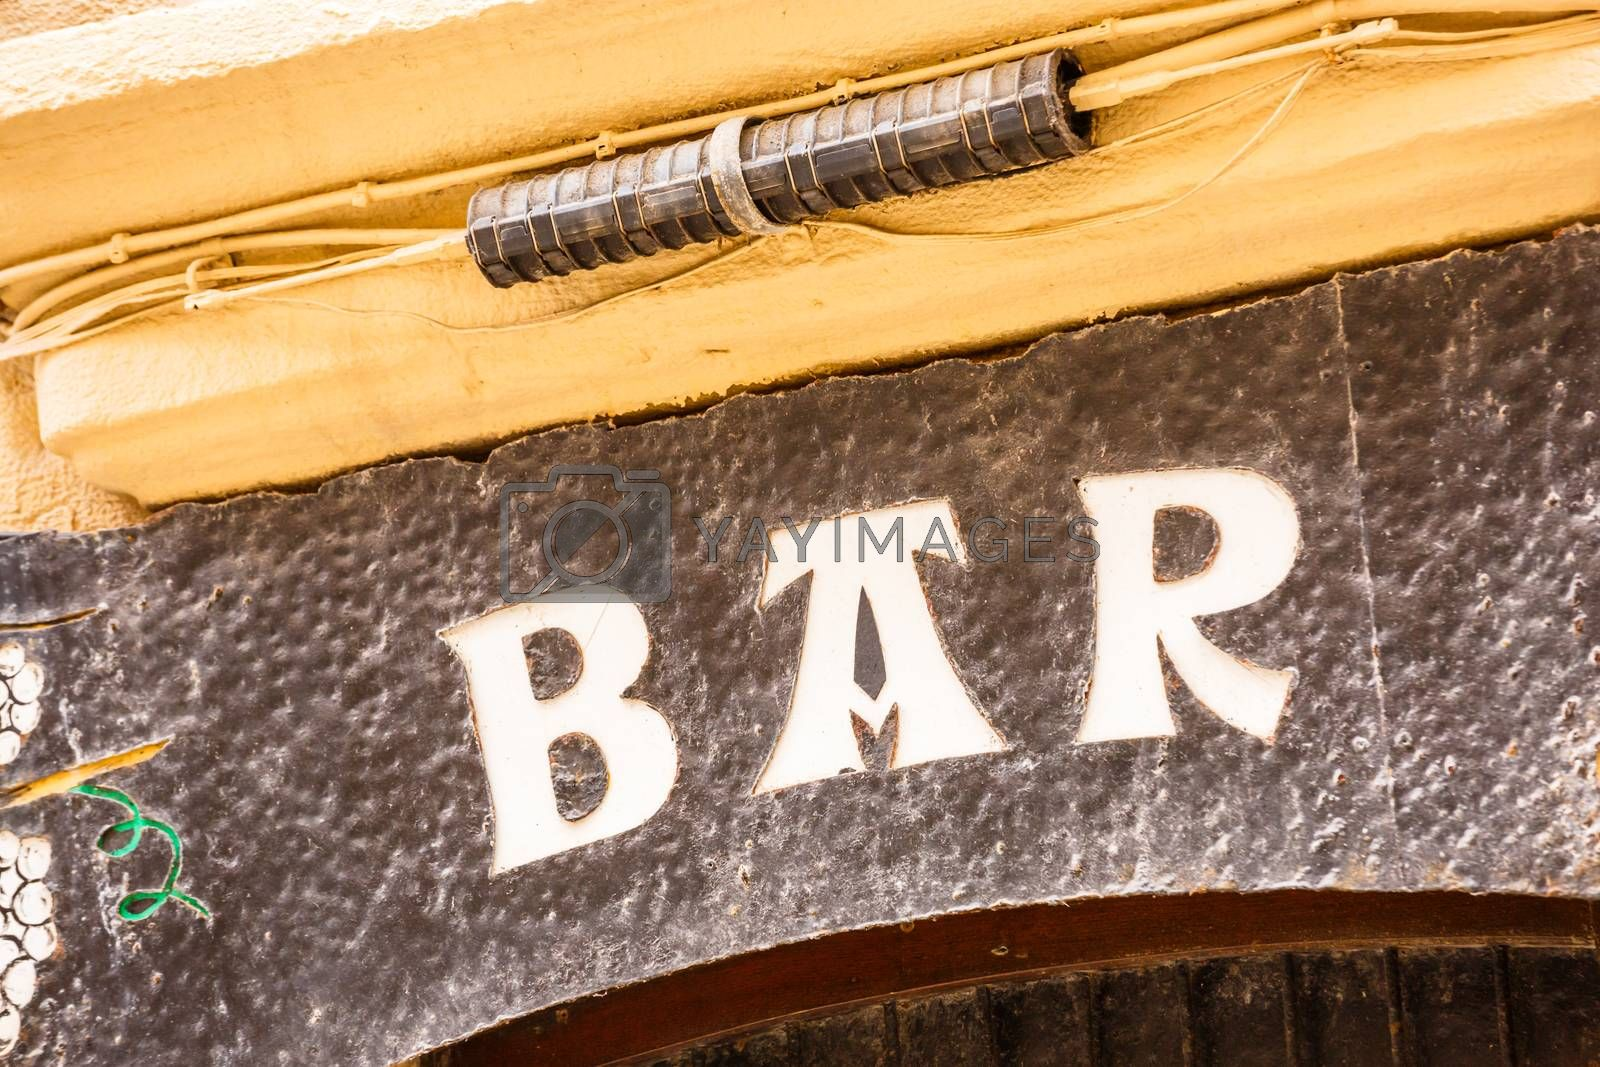 Royalty free image of an old bar sign over a dirty wall by pixinoo